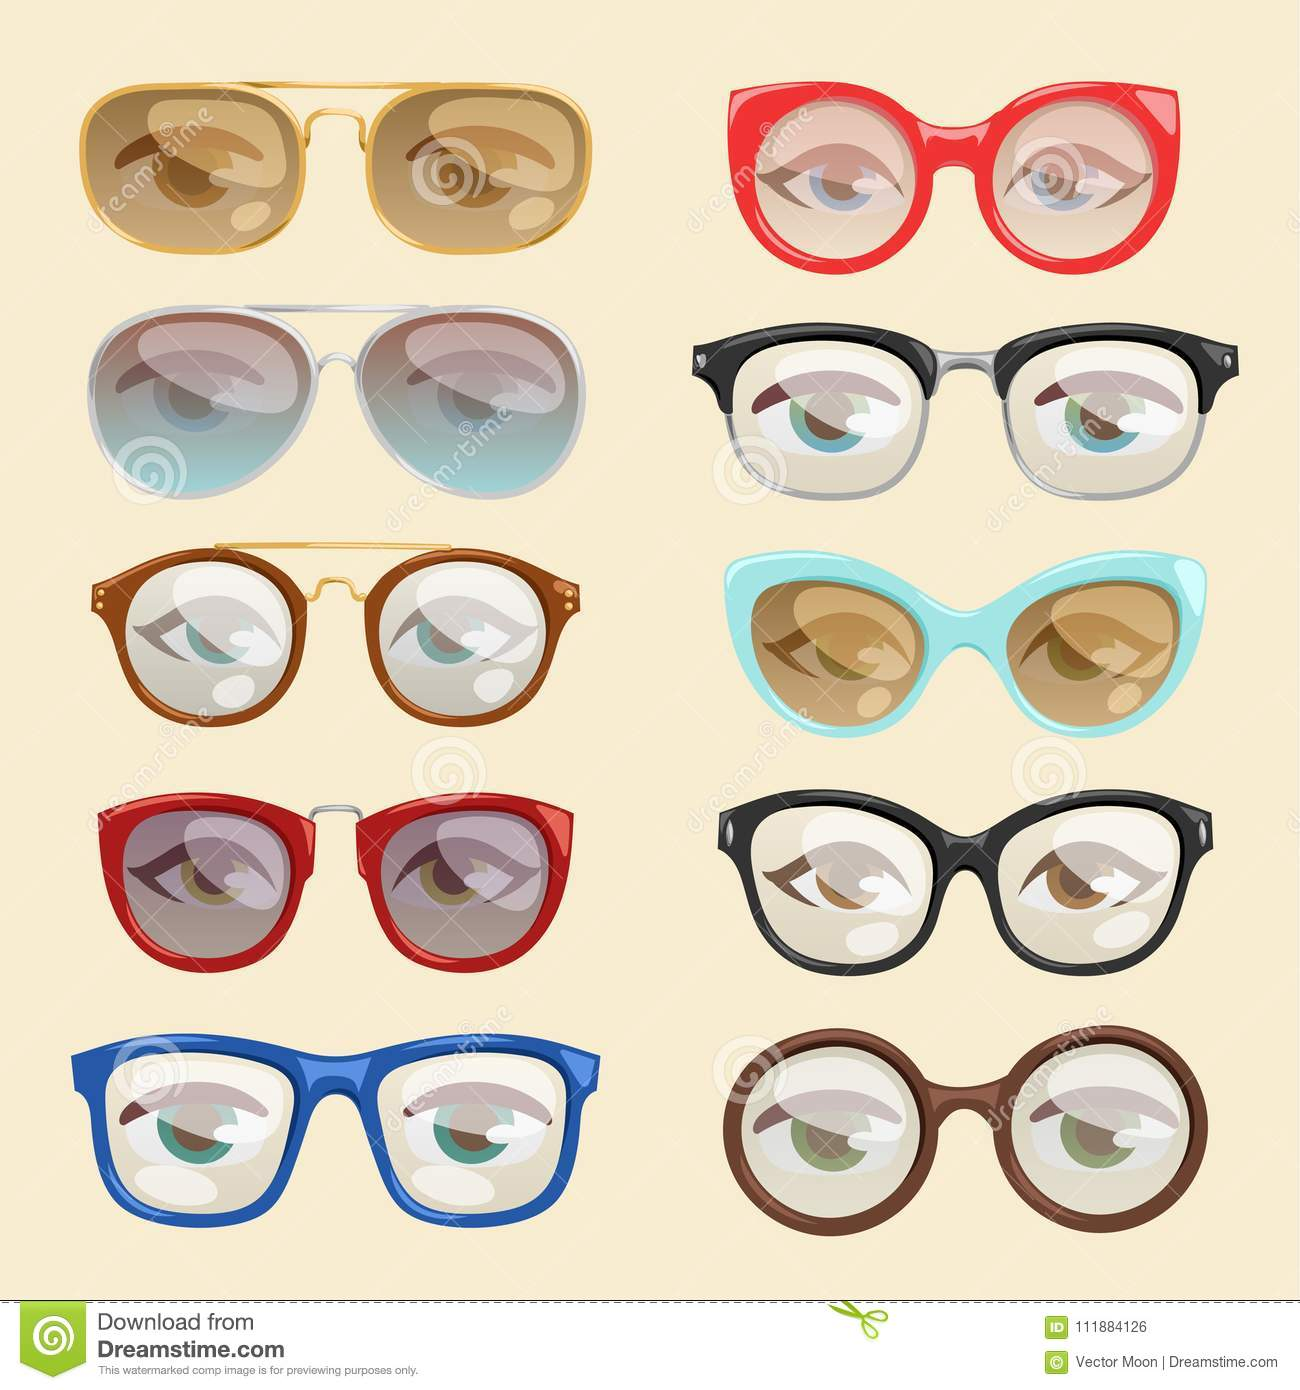 60df747265d Vector cartoon glasses face eyes cartoon eyeglass frame or sunglasses in  shapes and accessories for hipsters